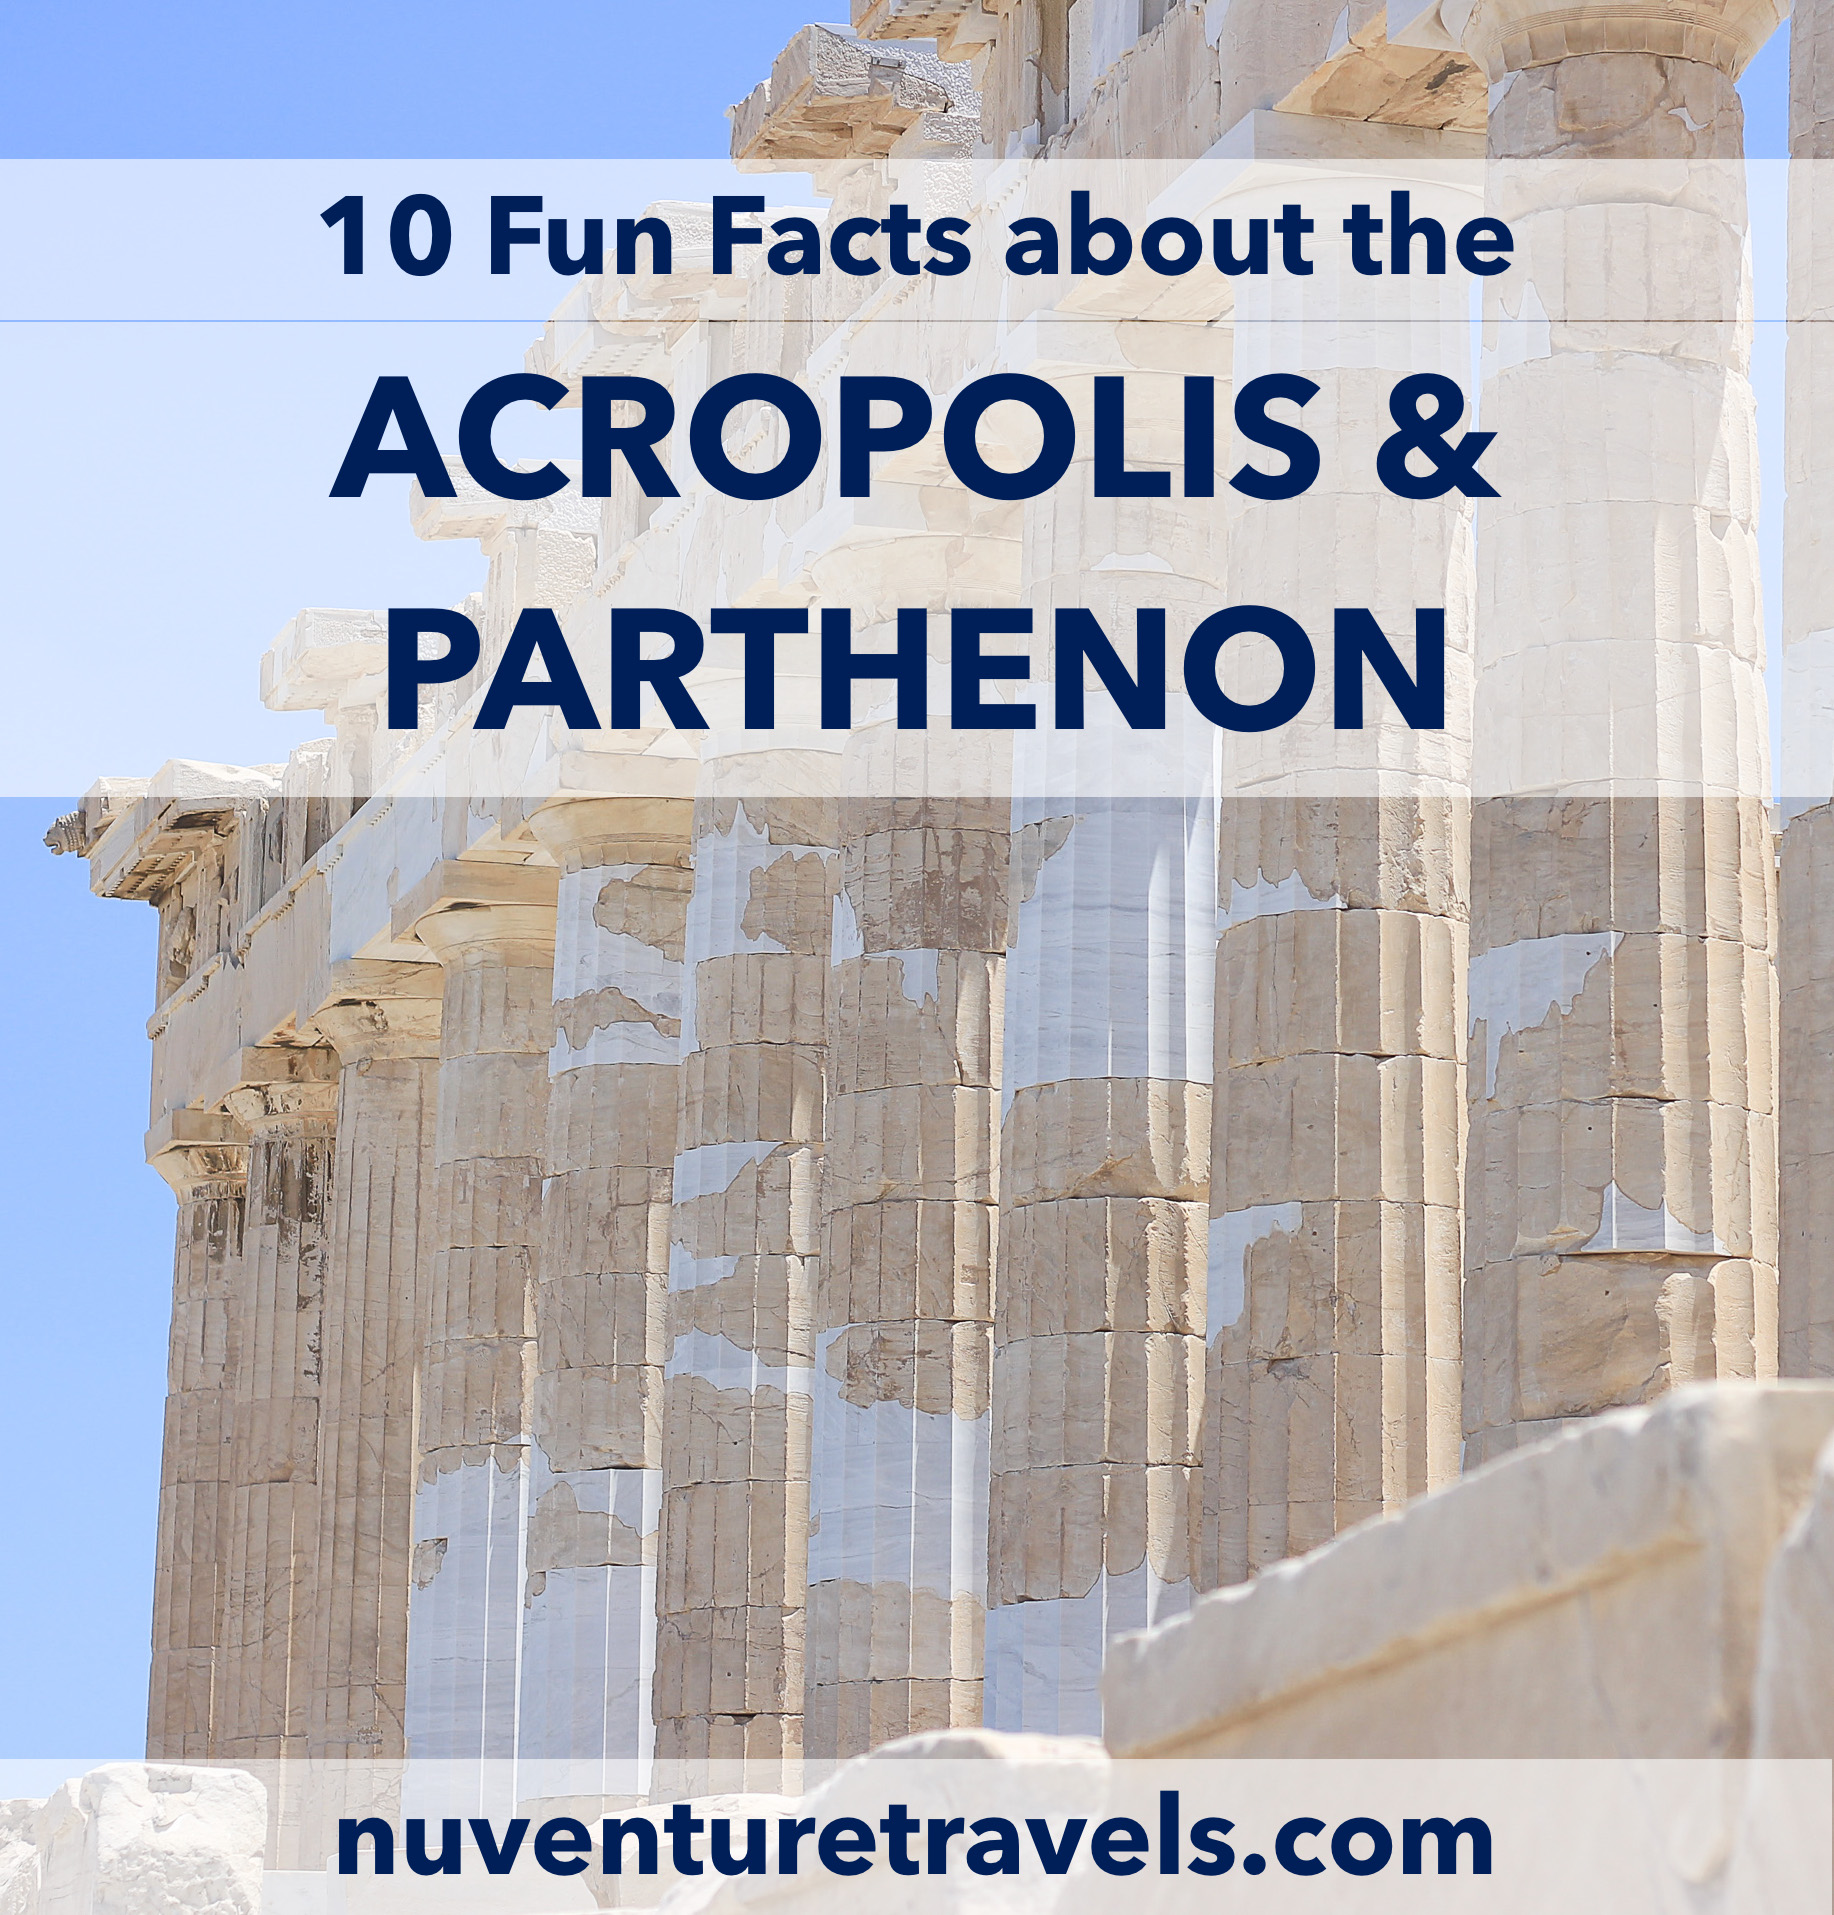 10 Fun Facts About Acropolis and Parthenon in Athens, Greece